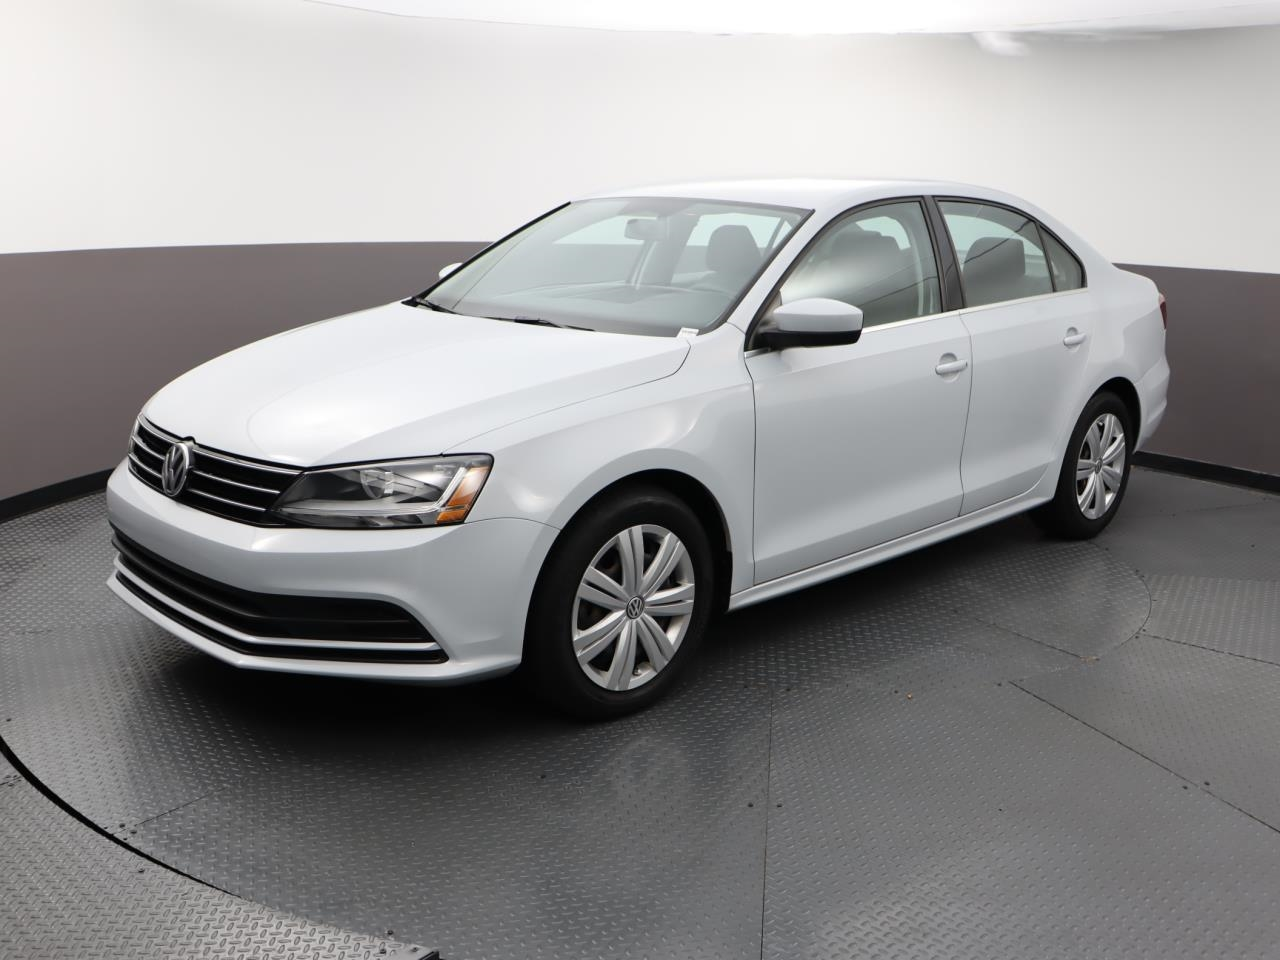 Used VOLKSWAGEN JETTA 2017 WEST PALM 1.4T S